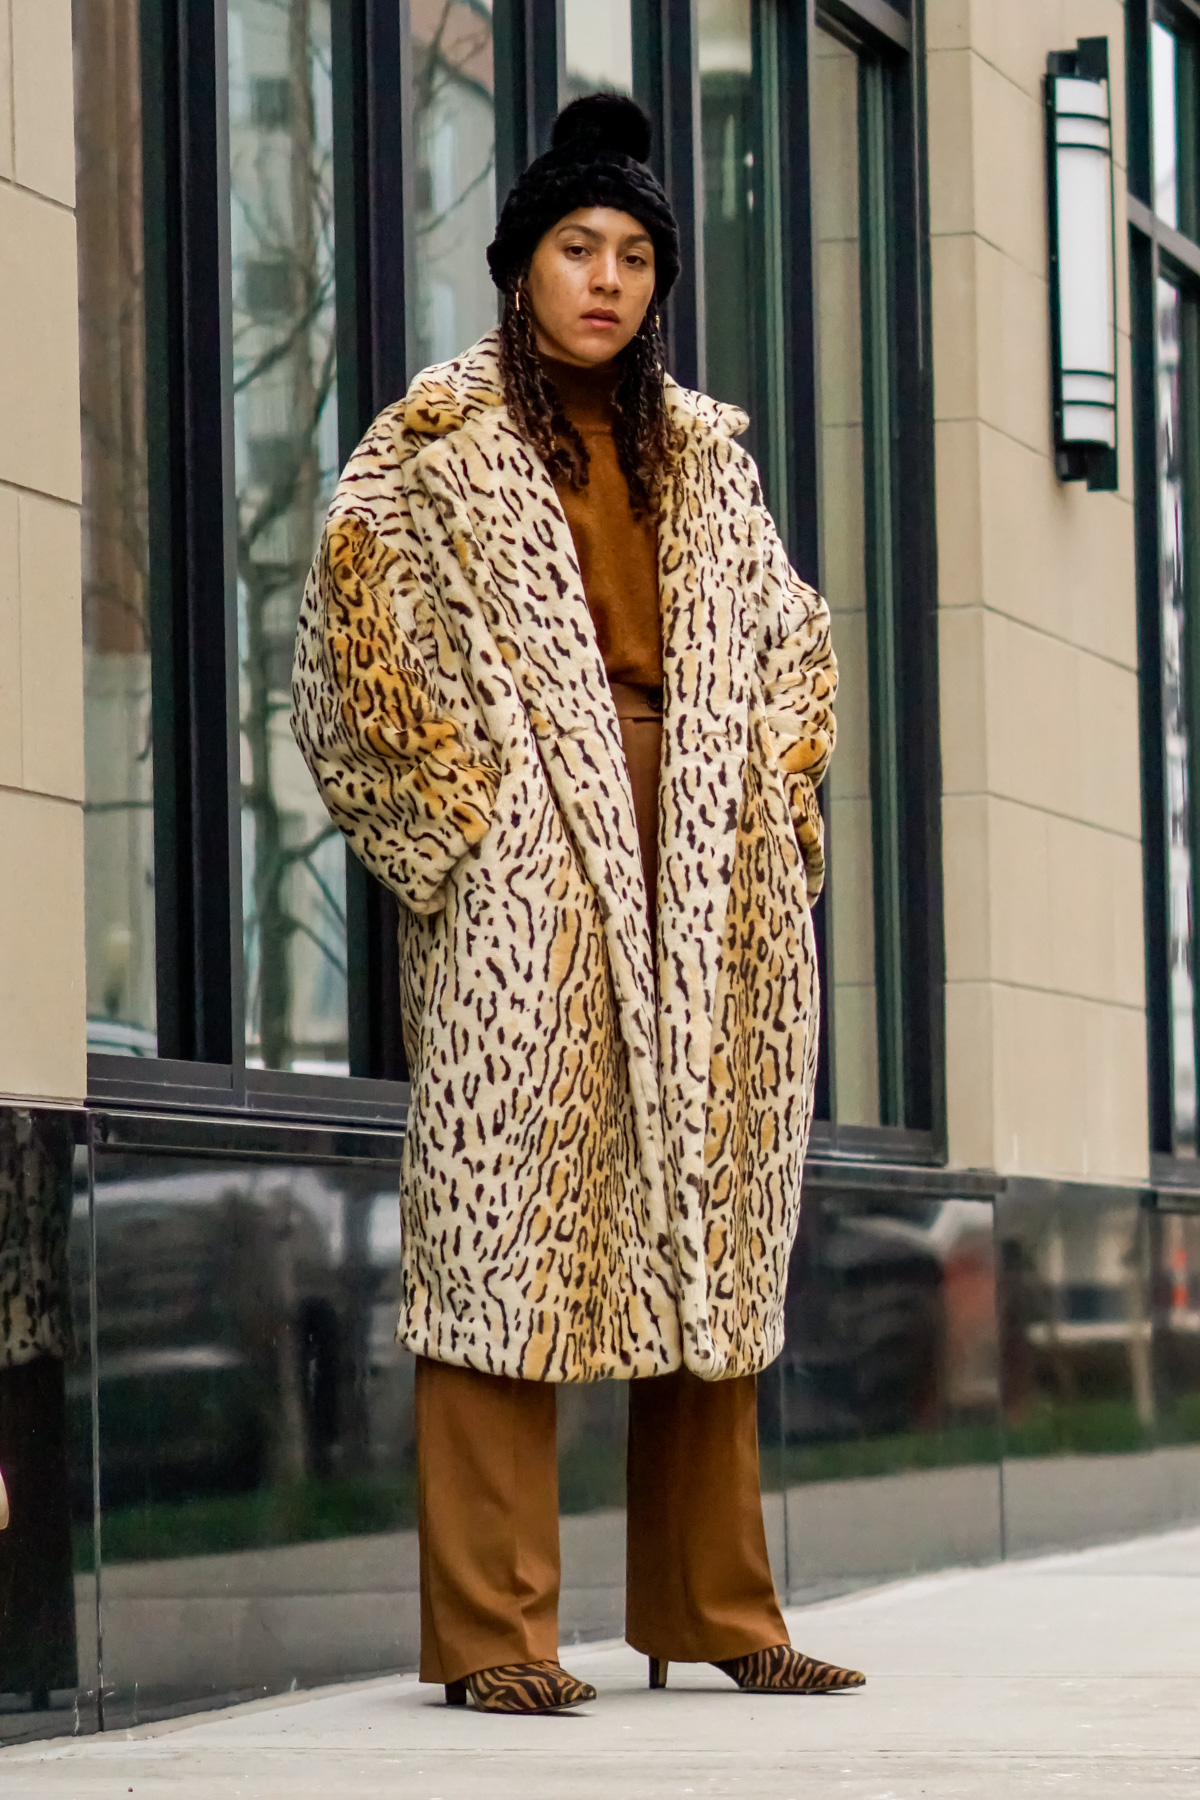 faux fur coat outfit black girl, how to style a faux fur coat, faux fur coat outfit winter chic, ways to wear a faux fur coat for winter